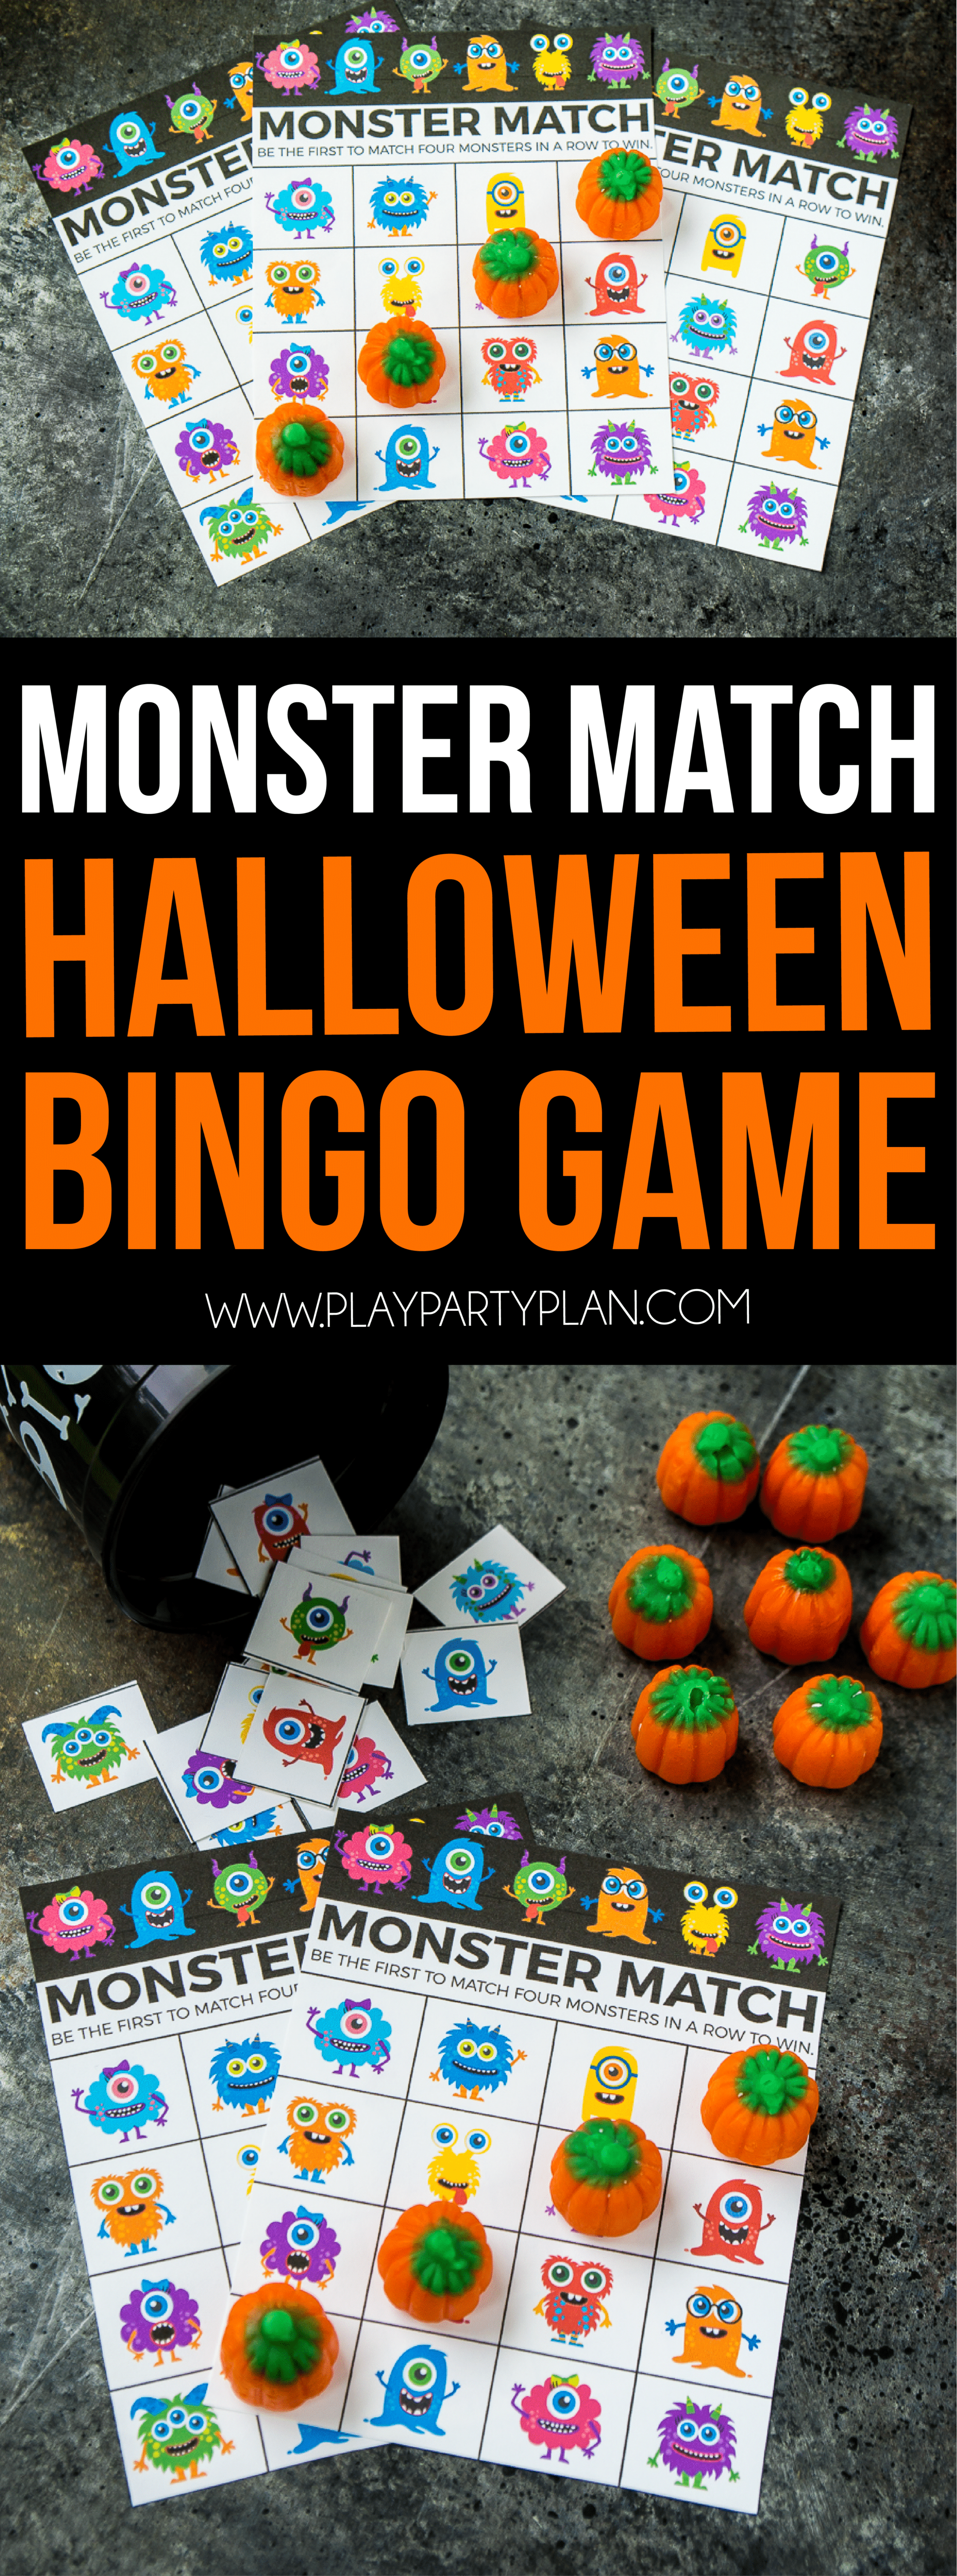 dont forget to pin these halloween bingo cards for later - Preschool Halloween Bingo